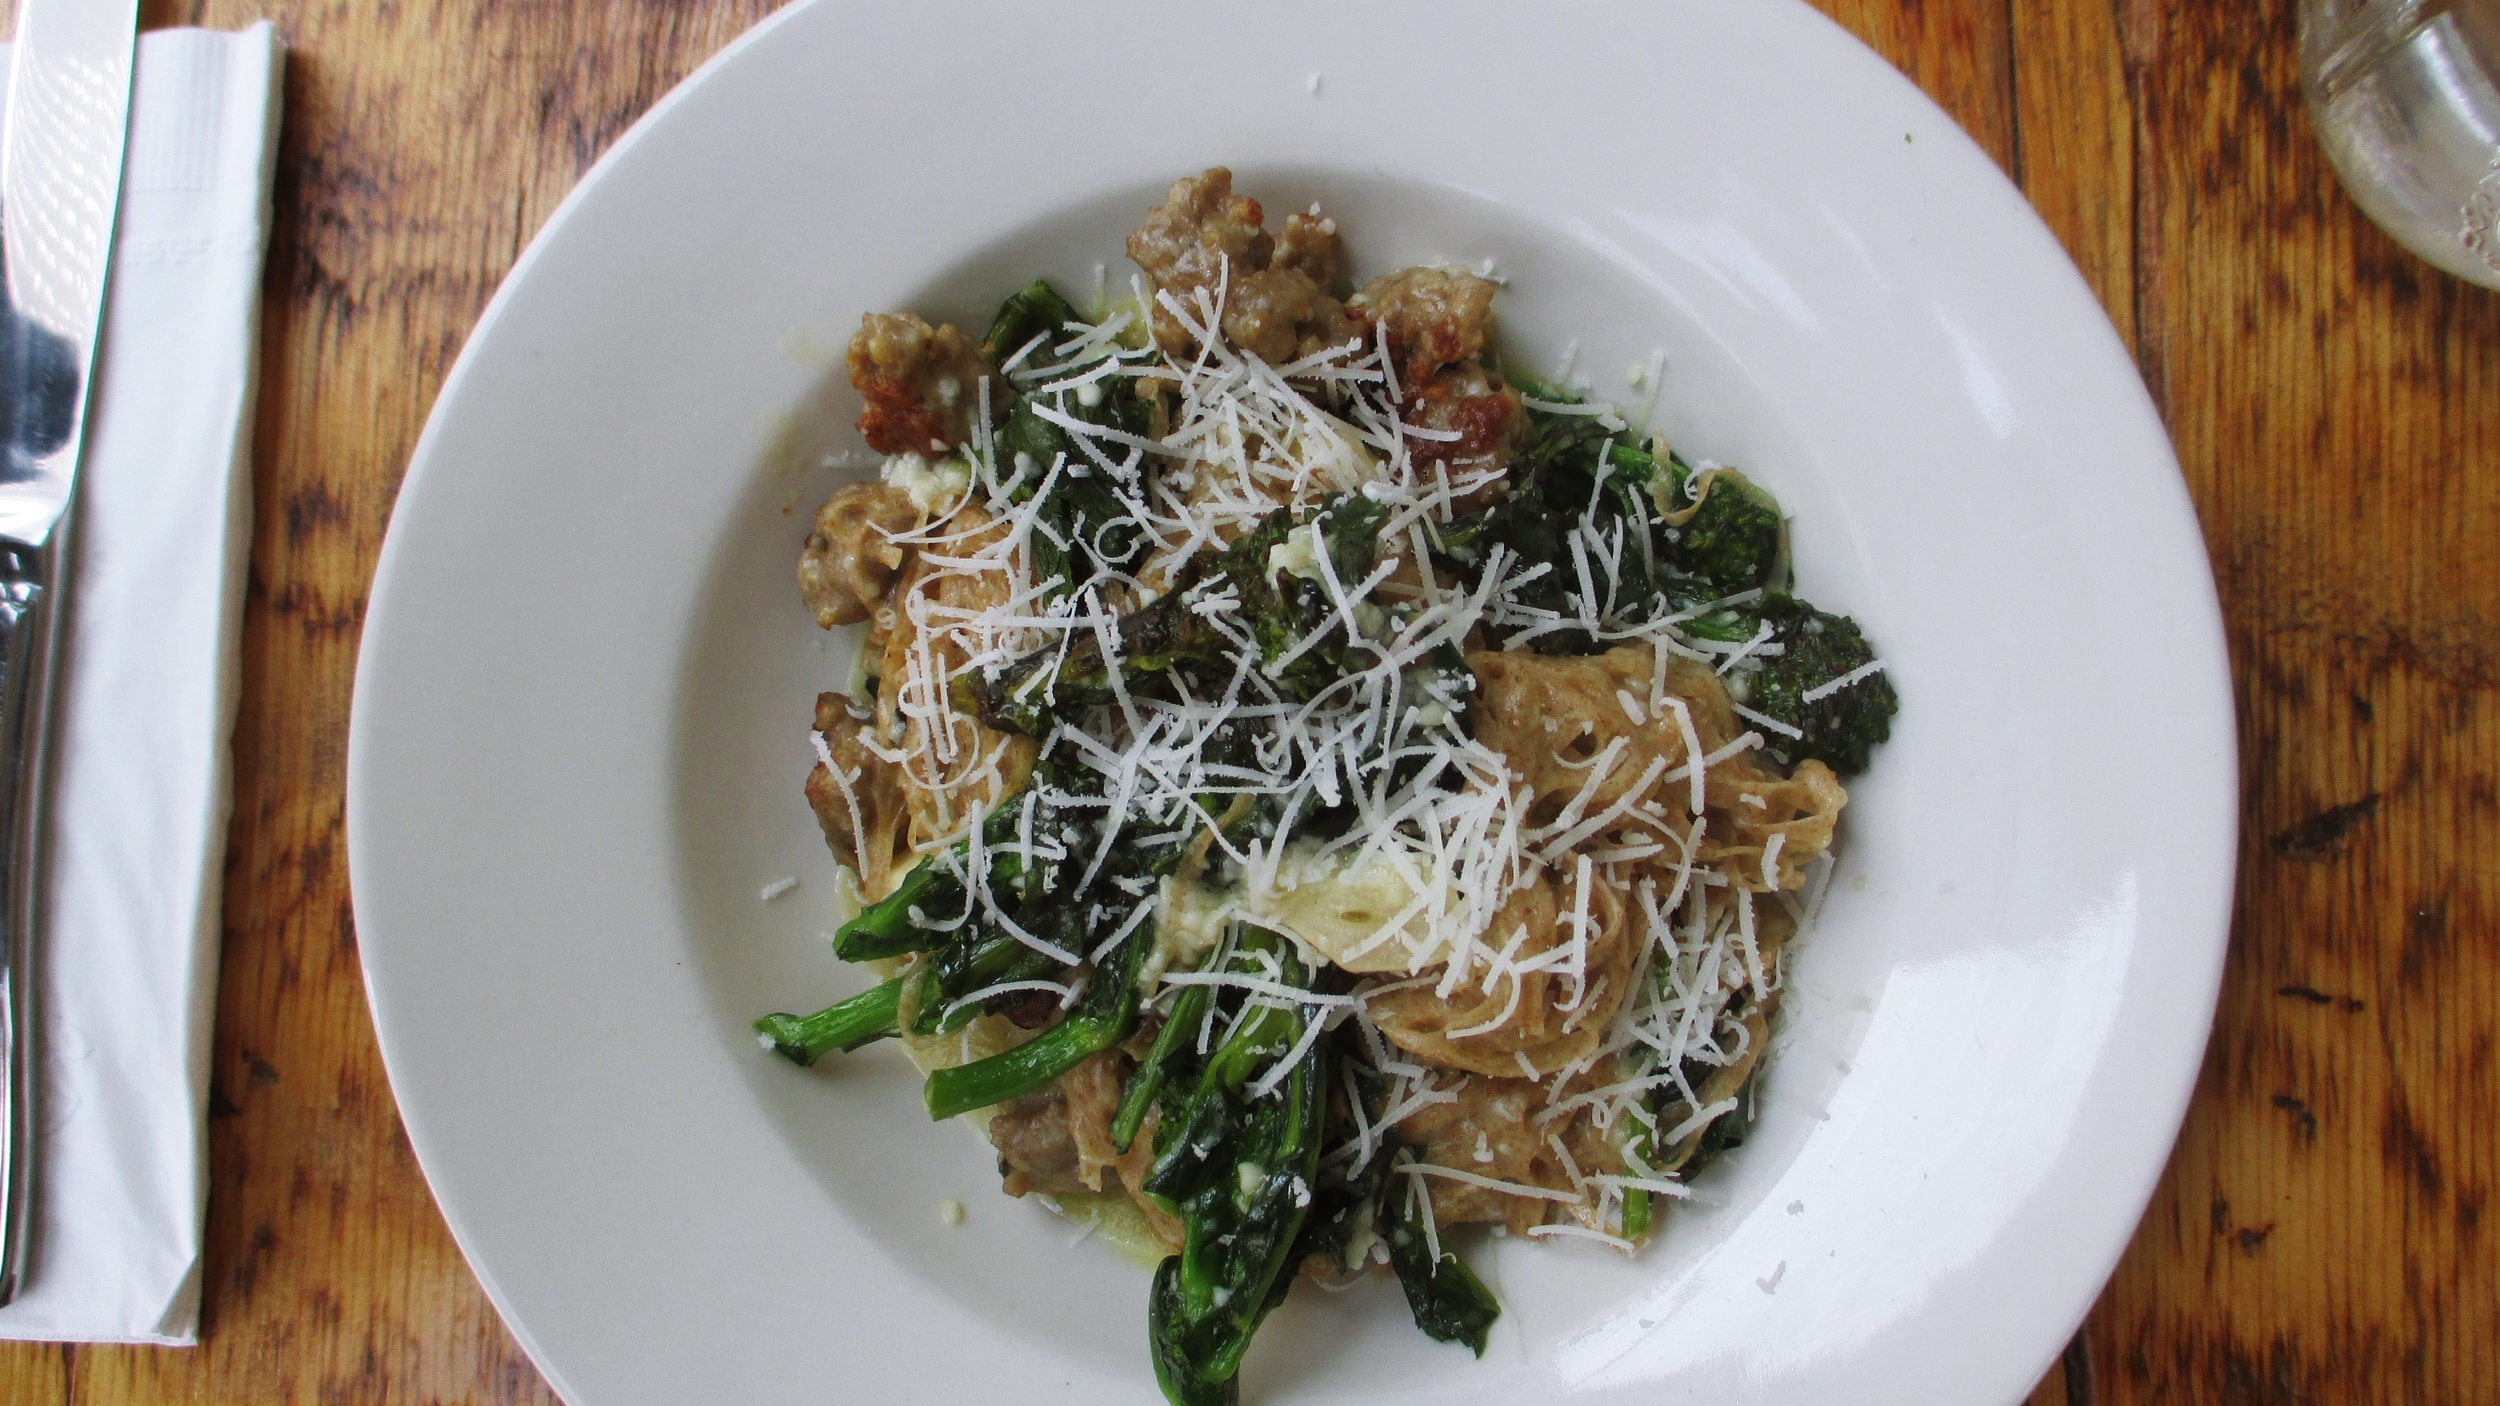 Whole wheat spaghetti with broccoli rabe and sausage